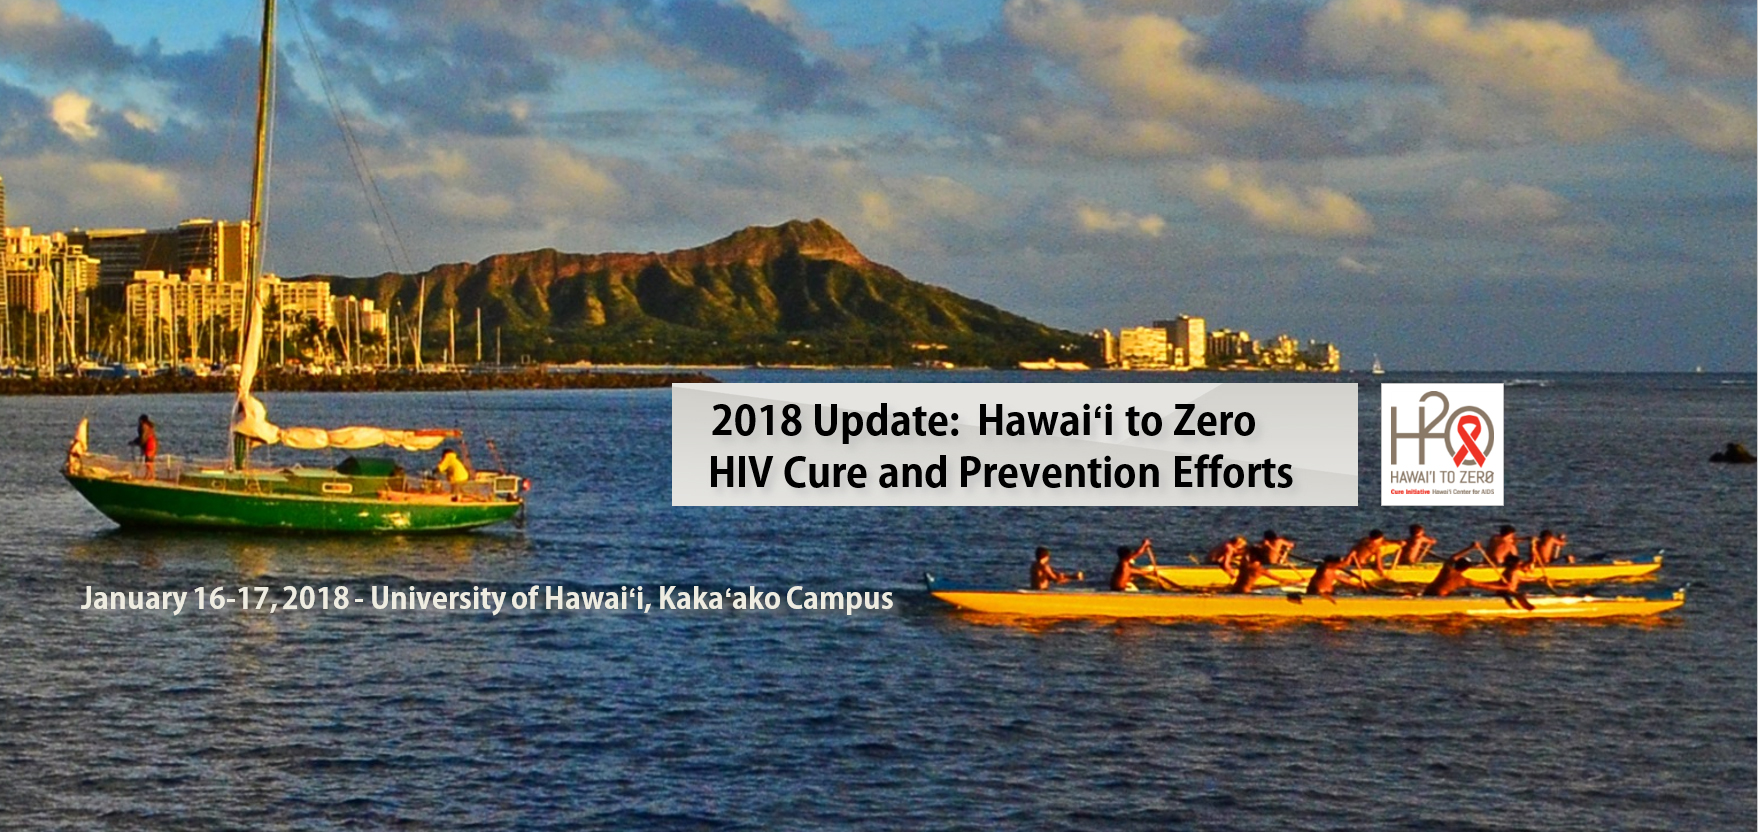 2018 Update: Hawaii to Zero HIV Cure and Prevention Efforts